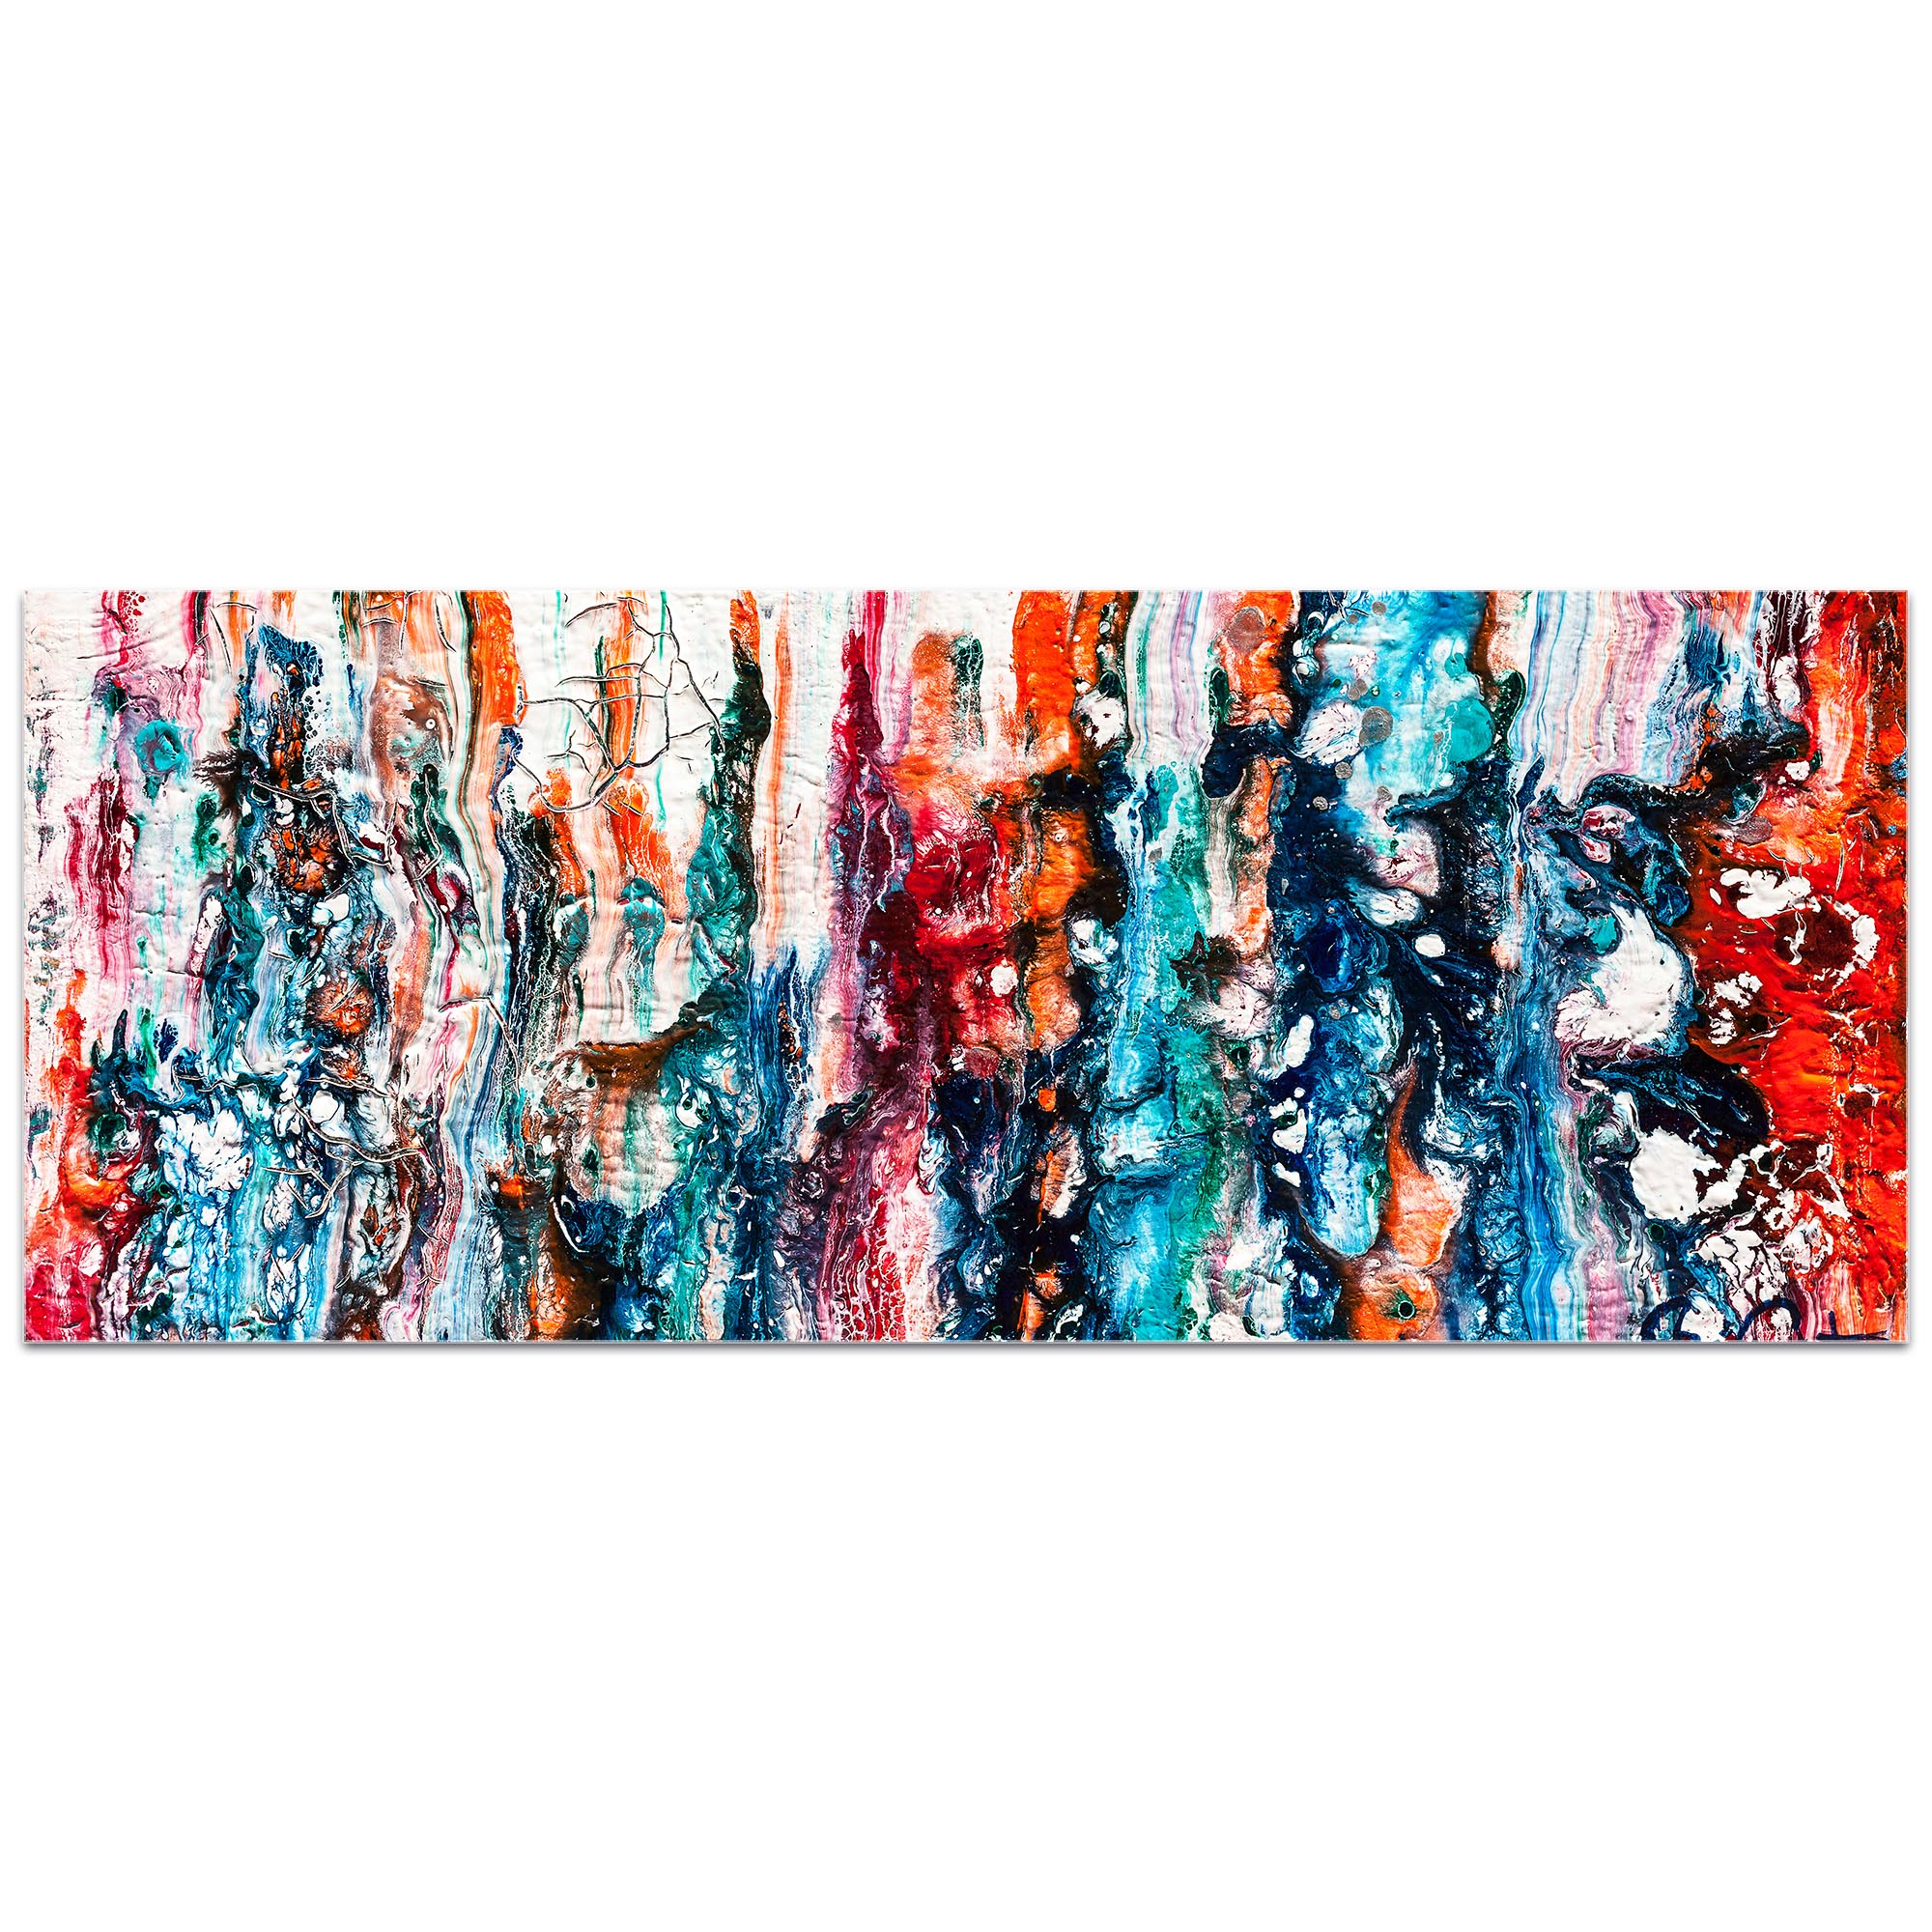 Abstract Wall Art 'Sunset On Her Breath 5' - Colorful Urban Decor on Metal or Plexiglass - Image 2